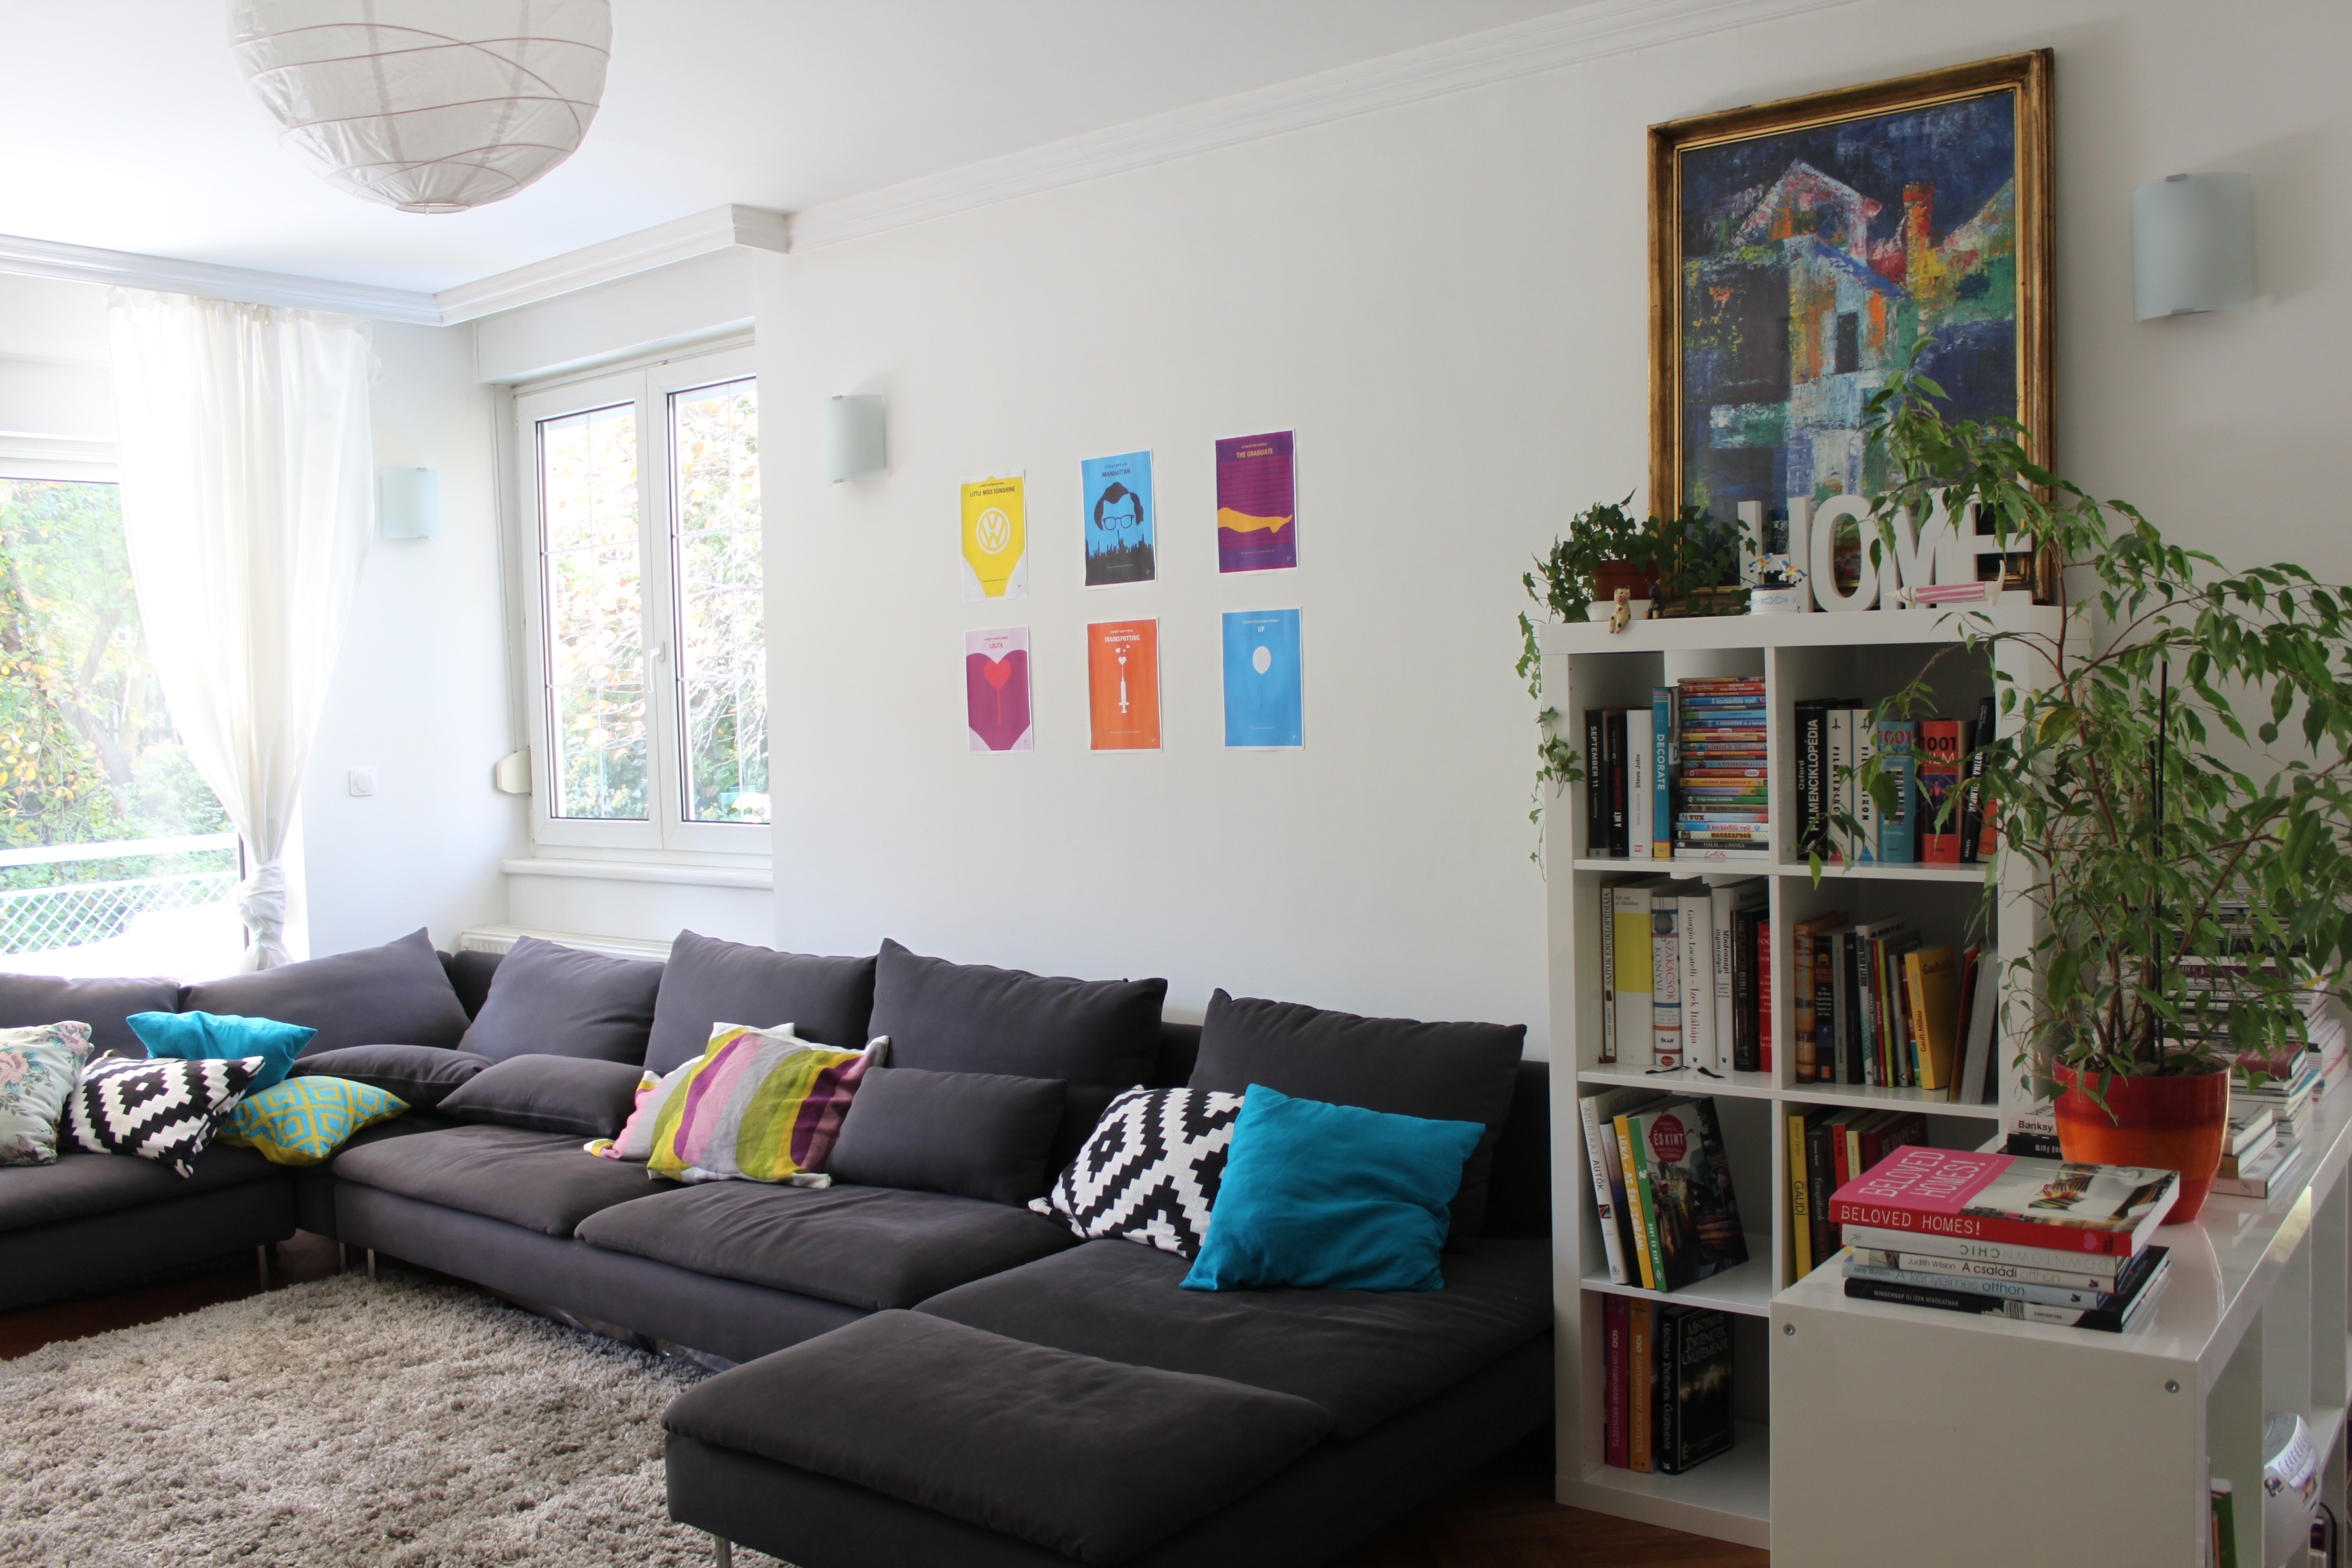 1000 images about sofa on pinterest sofas ikea and for Ikea living room ideas 2013